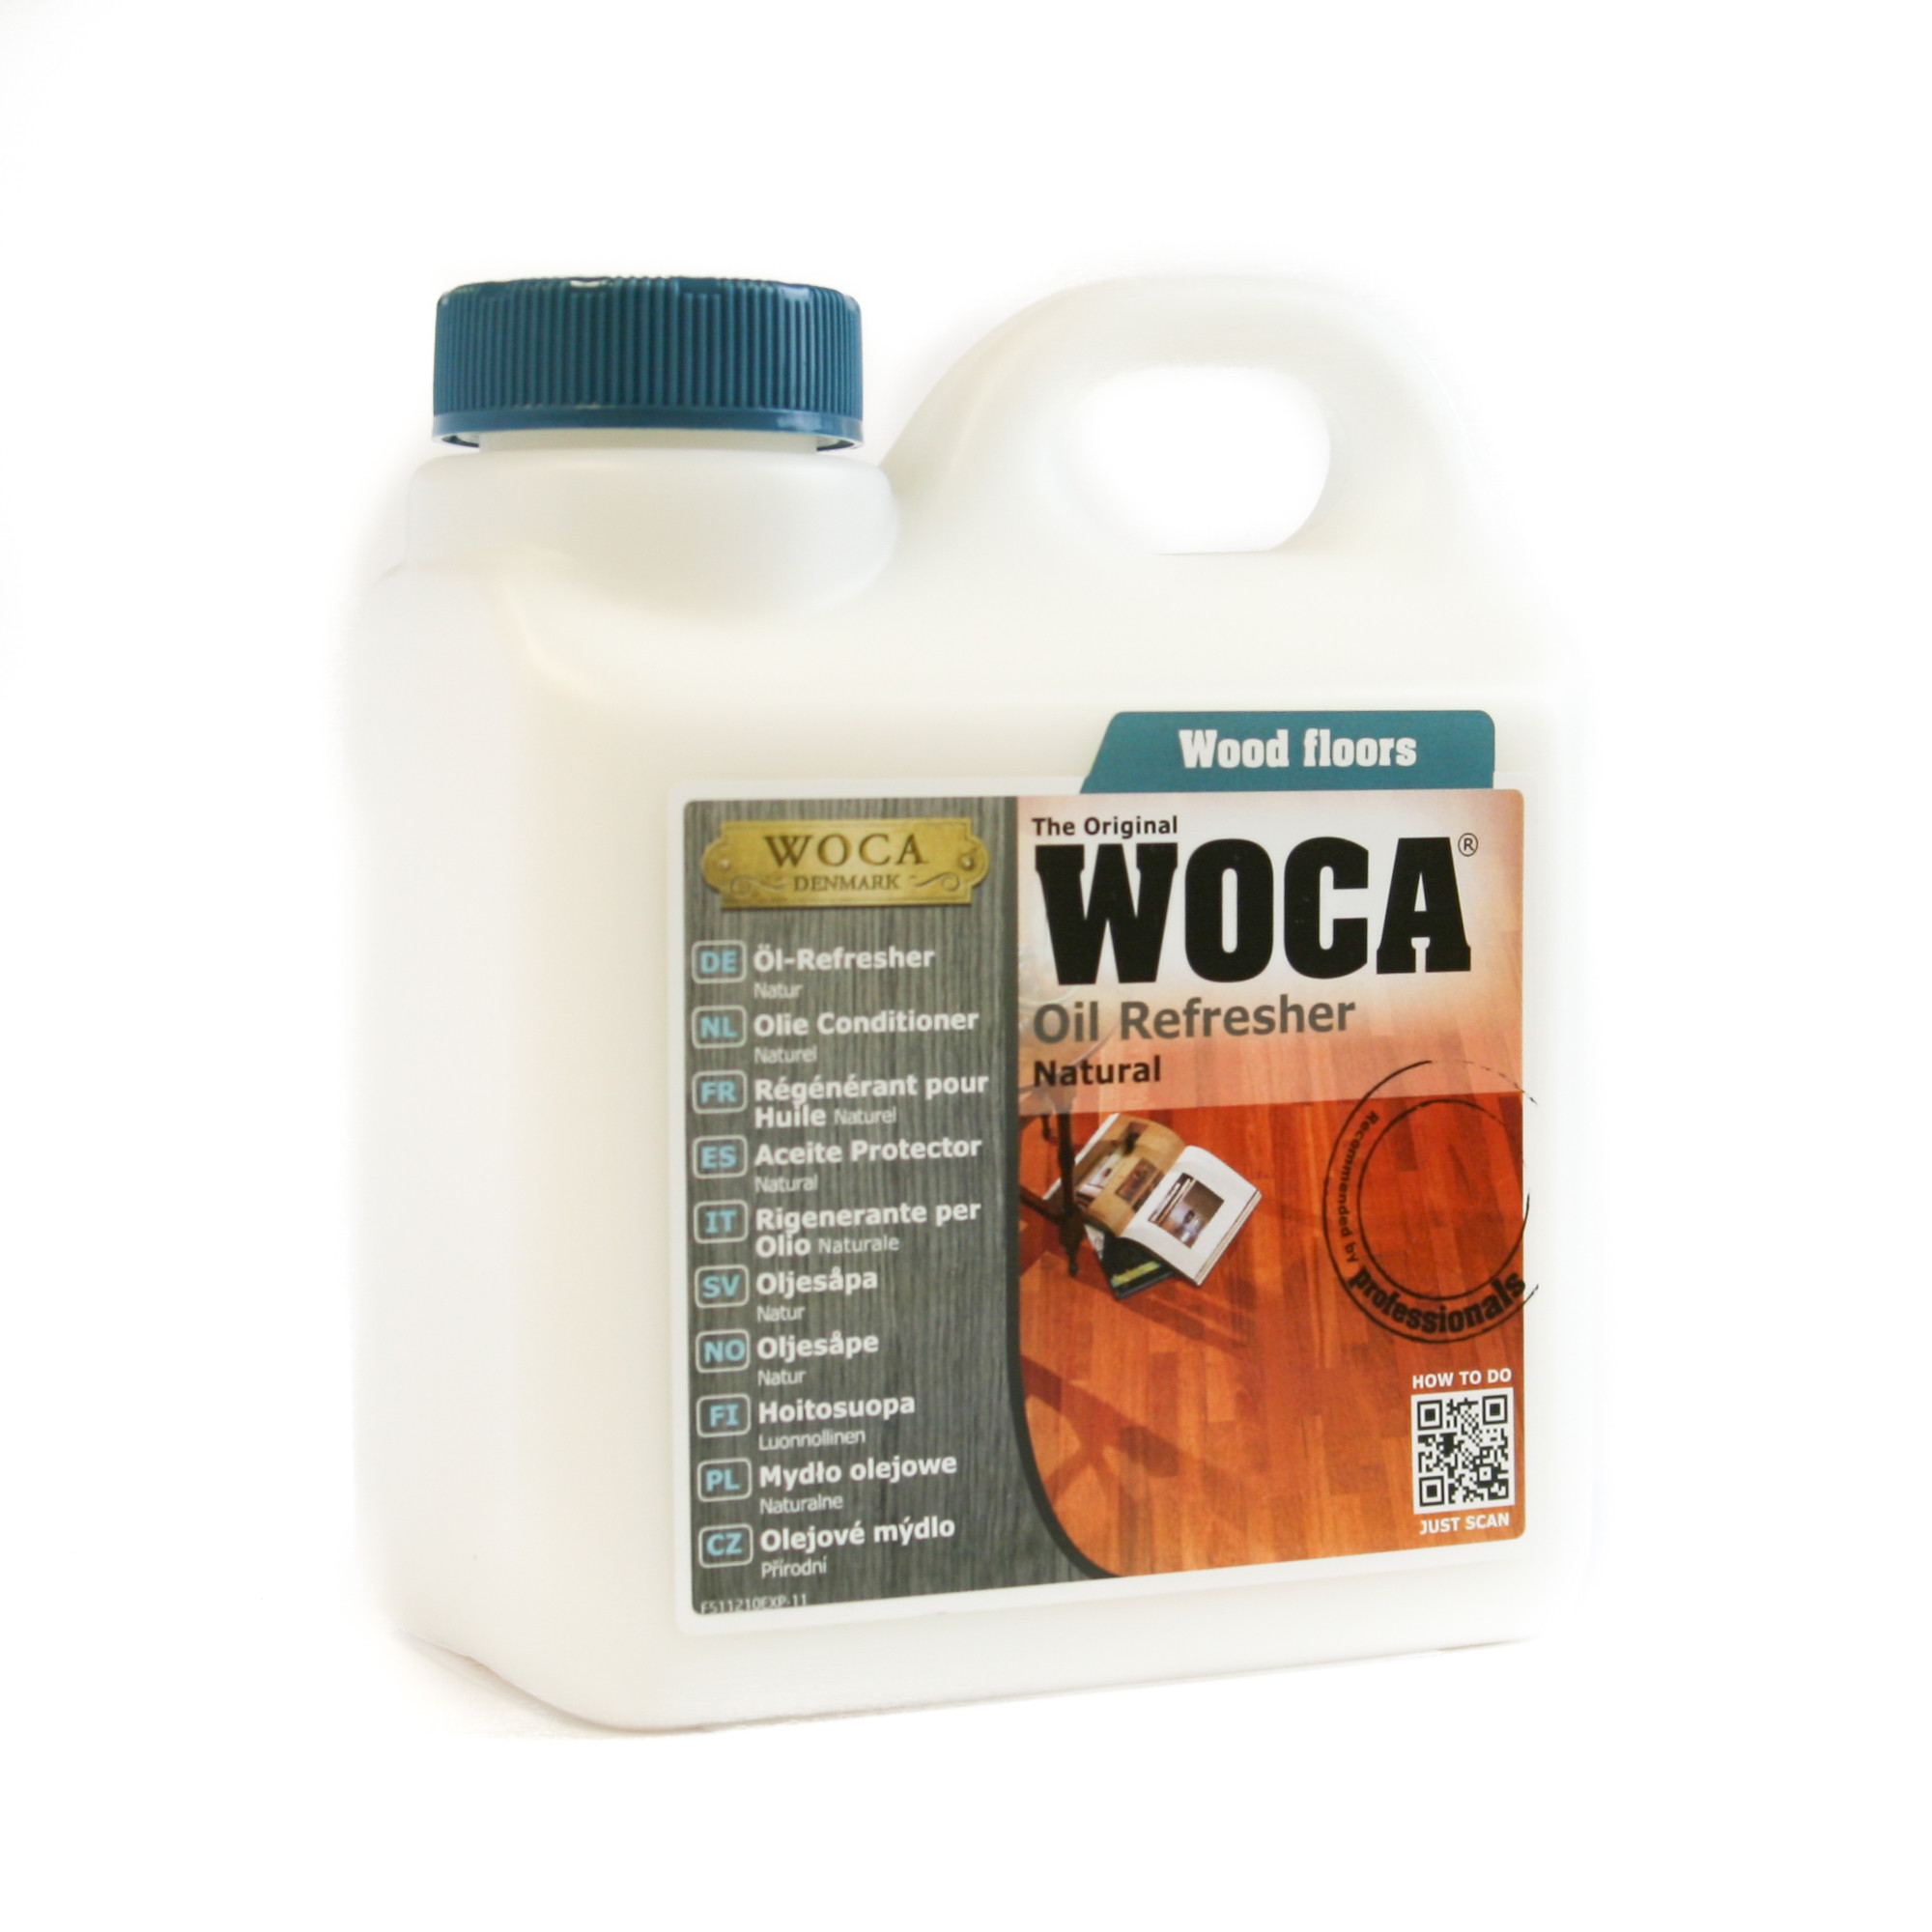 woca oil refresher.jpg